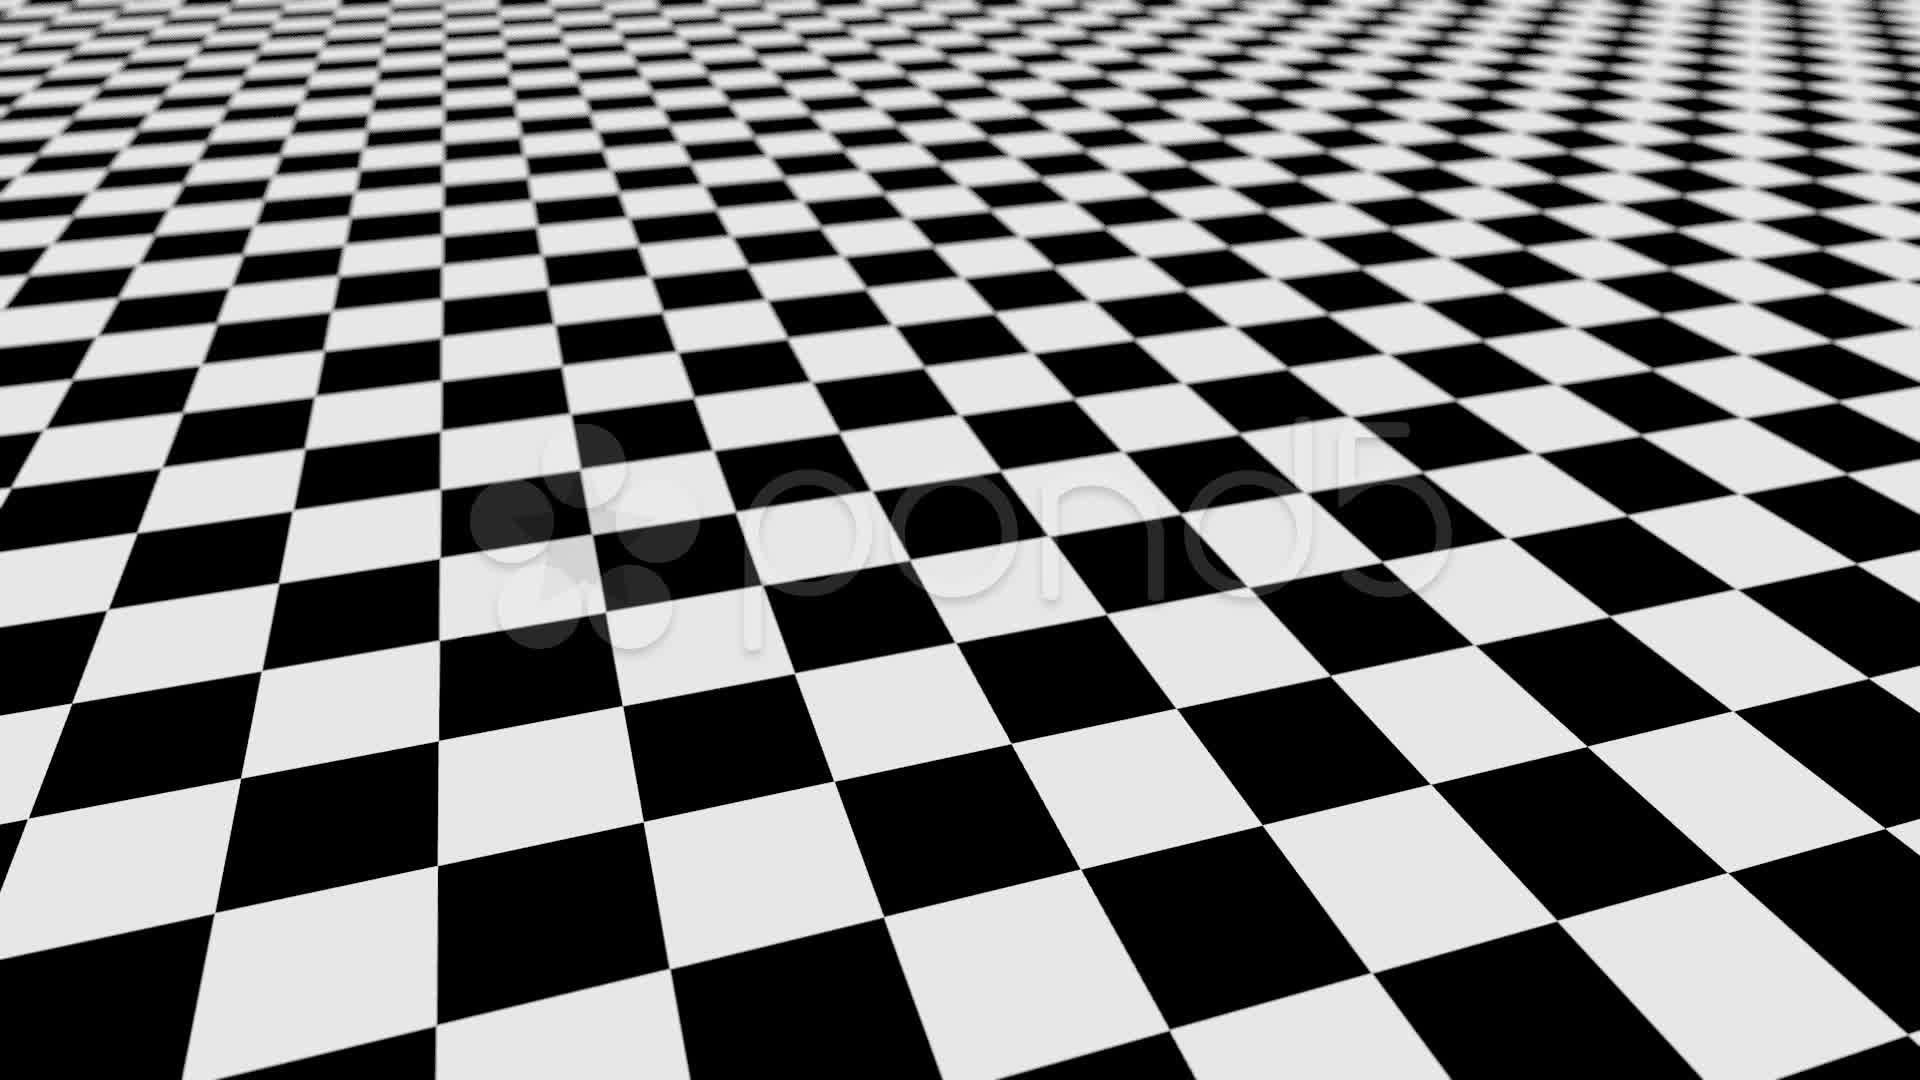 black and white checkerboard wallpaper 47 images. Black Bedroom Furniture Sets. Home Design Ideas